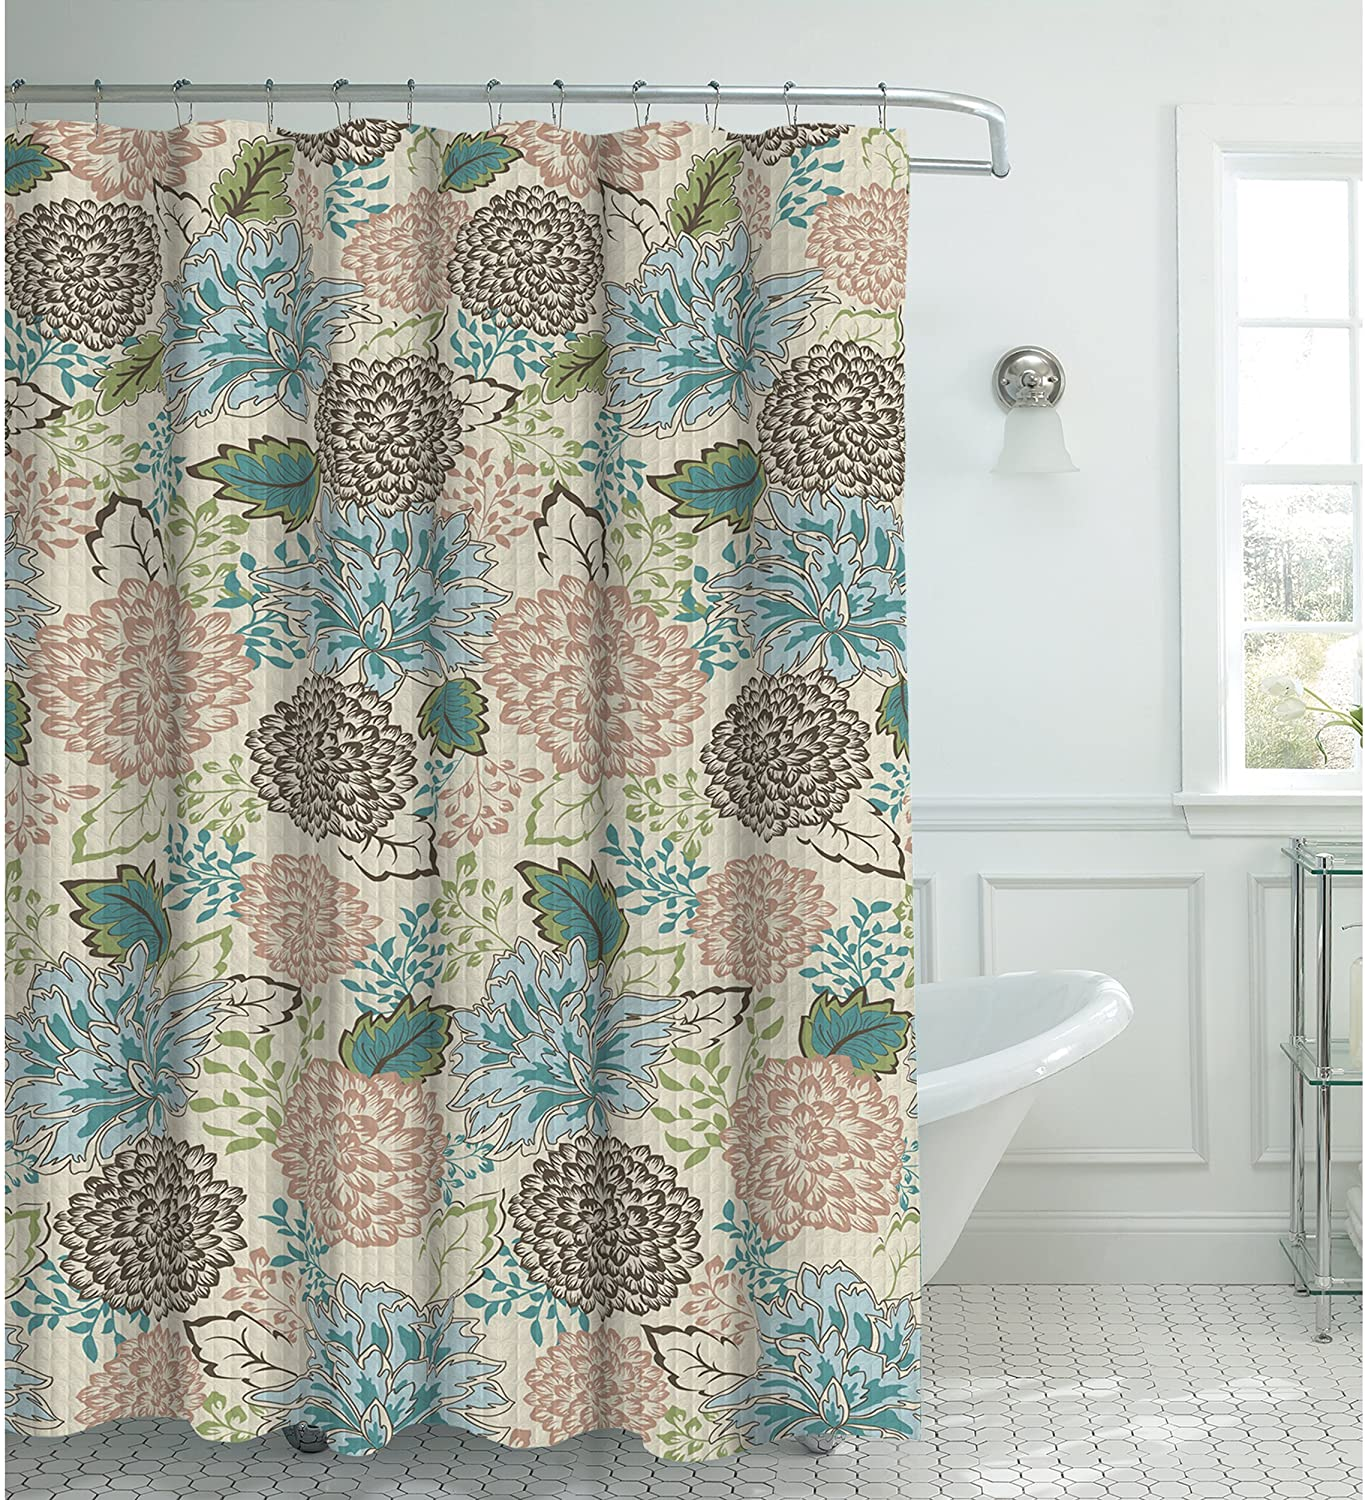 Creative Home Ideas Faux Linen 13-Piece Shower Curtain with Metal Roller Hooks, Sonrie